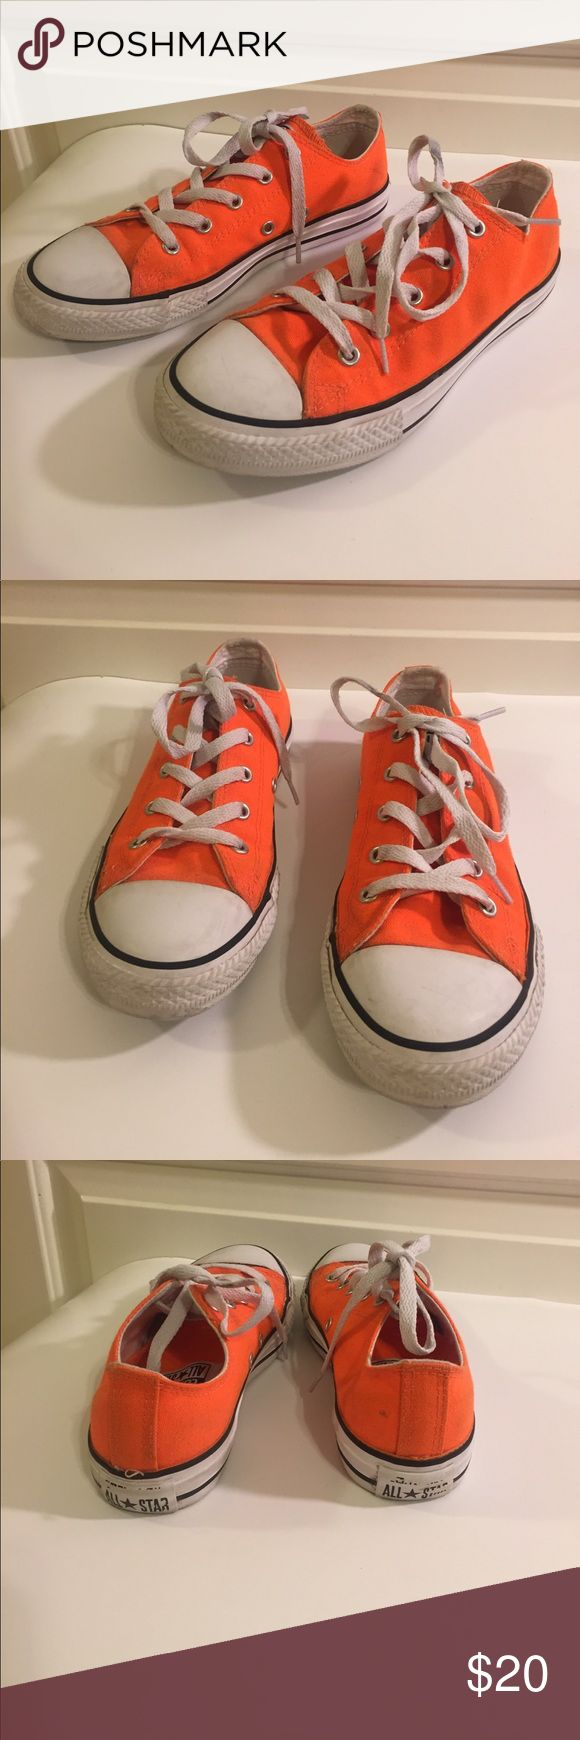 Orange Converse Youth Size 3 Orange Converse Youth Size 3. Shoes show signs of wear but are still in good condition. Converse Shoes Sneakers